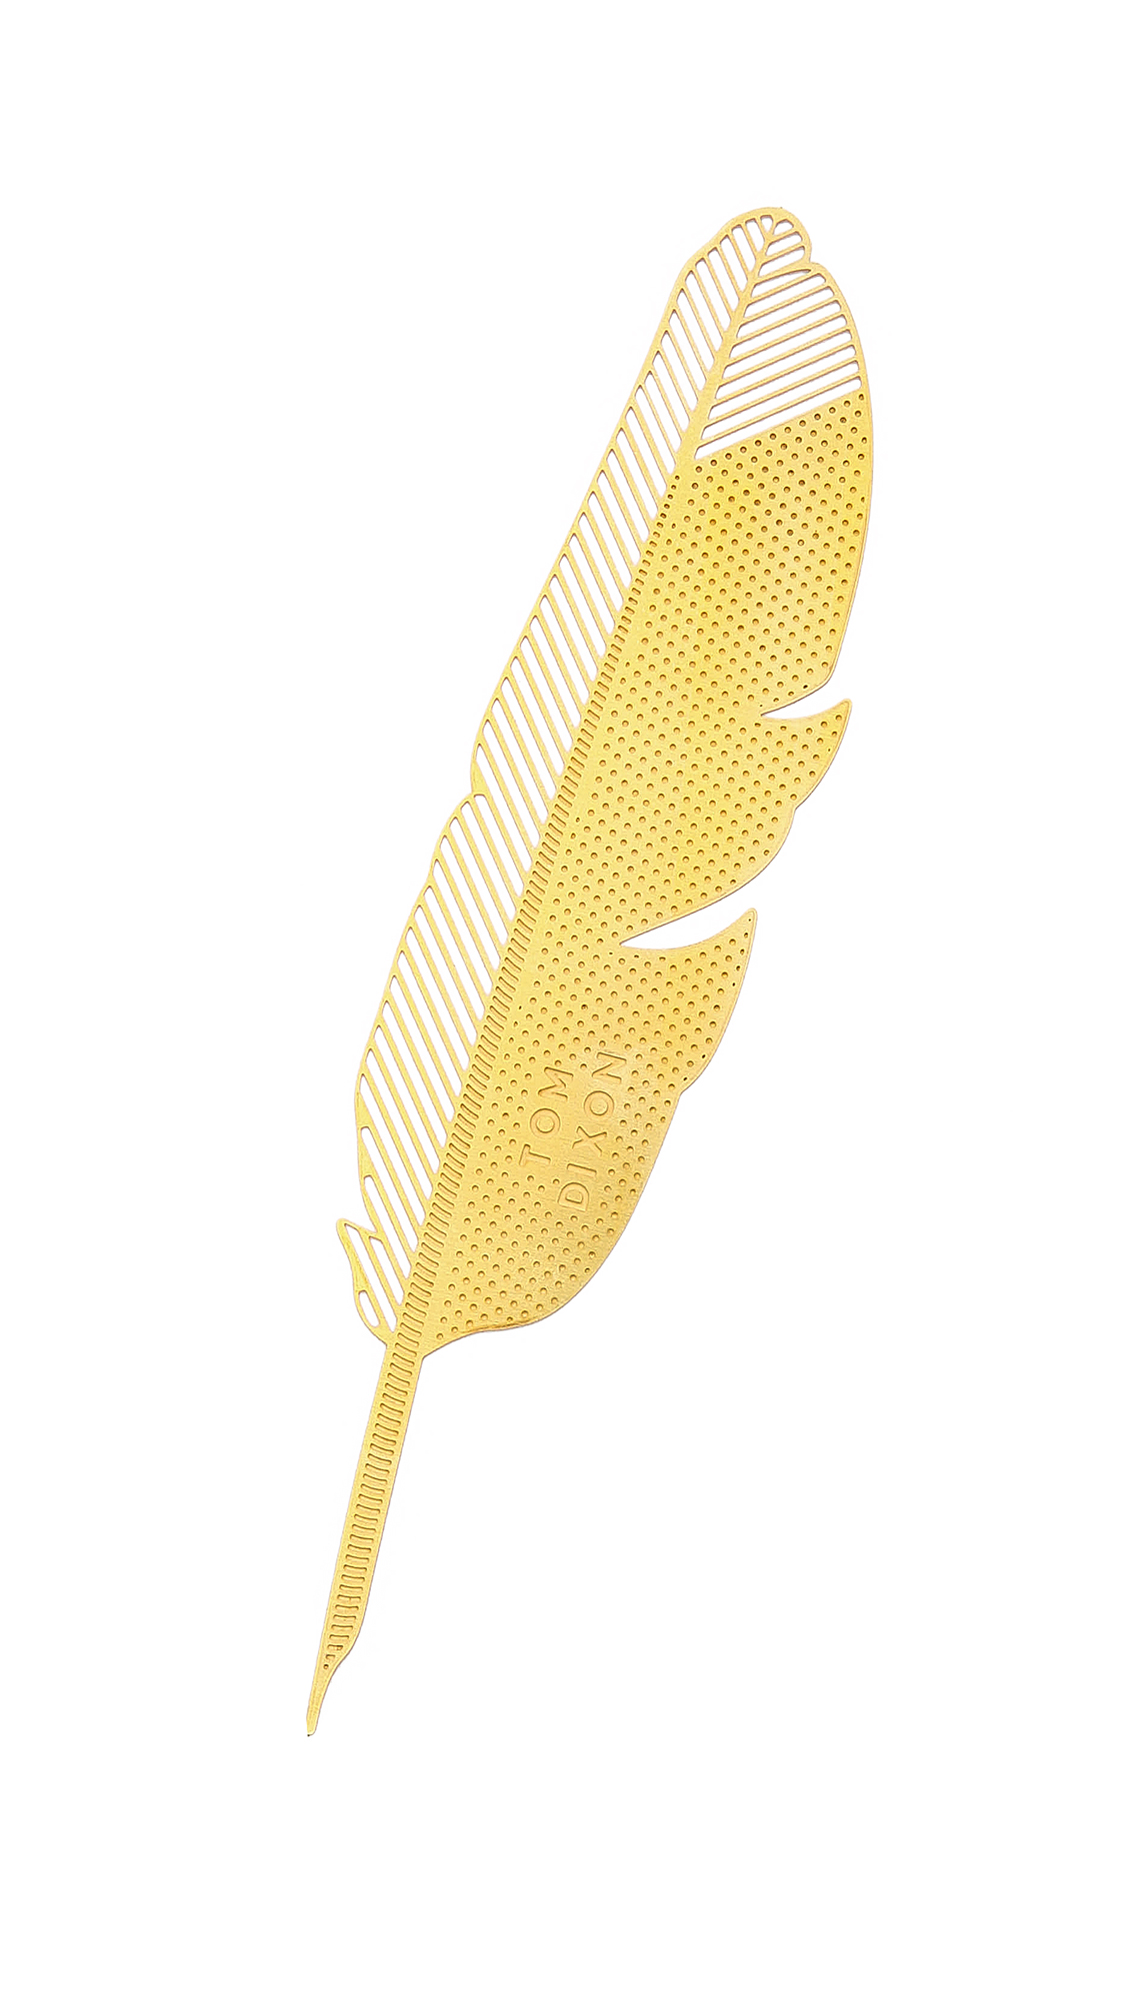 TOM DIXON The Bookworm Quill in Brass